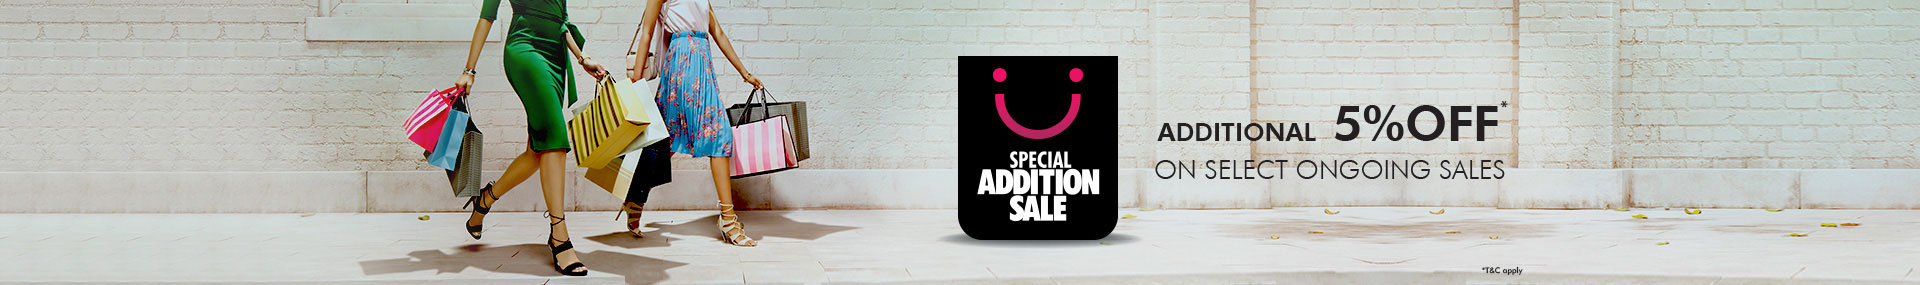 special-addition-sale